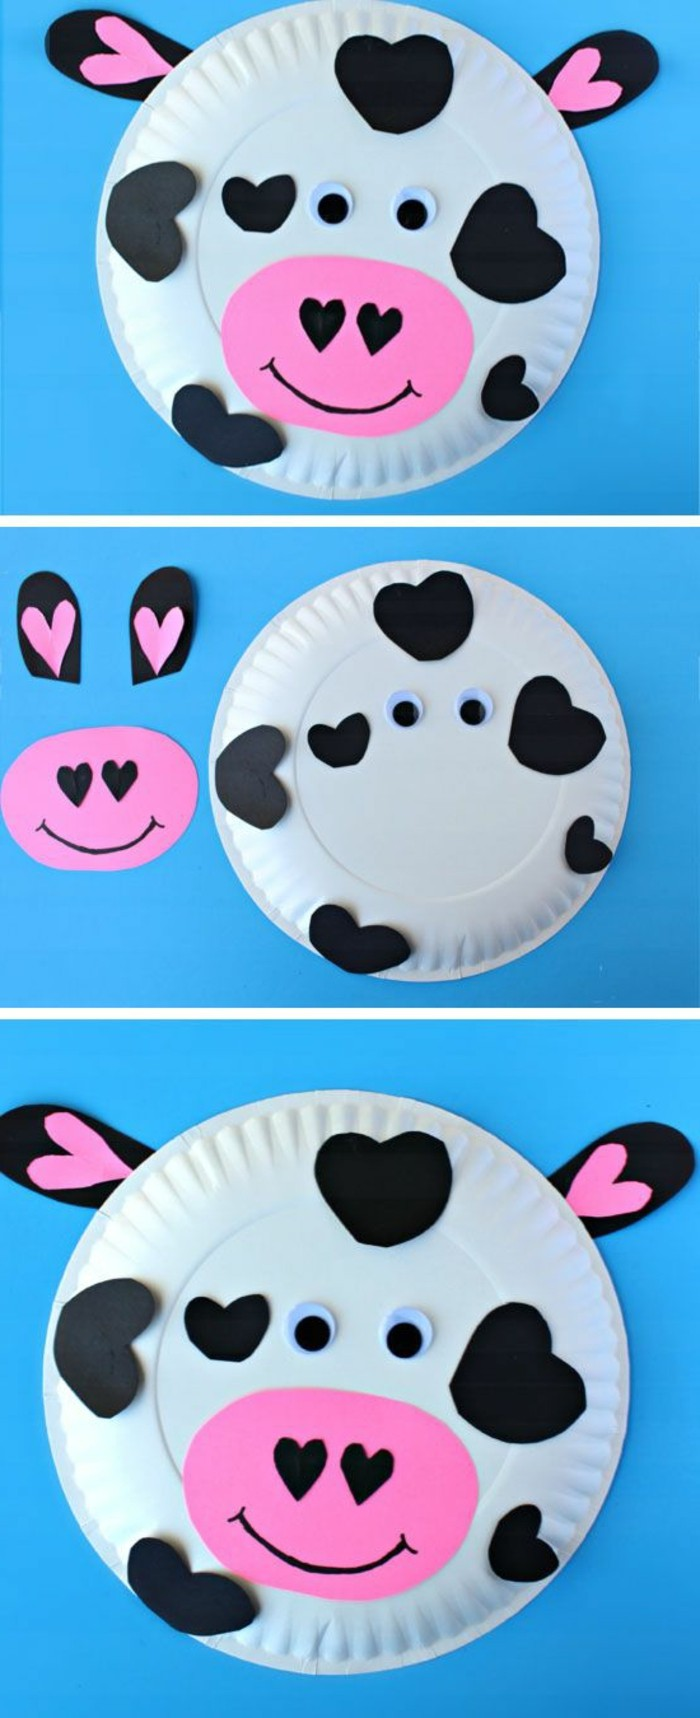 cow's face made from a white paper plate, decorated with pink and black paper cutouts, with stick-on eyes